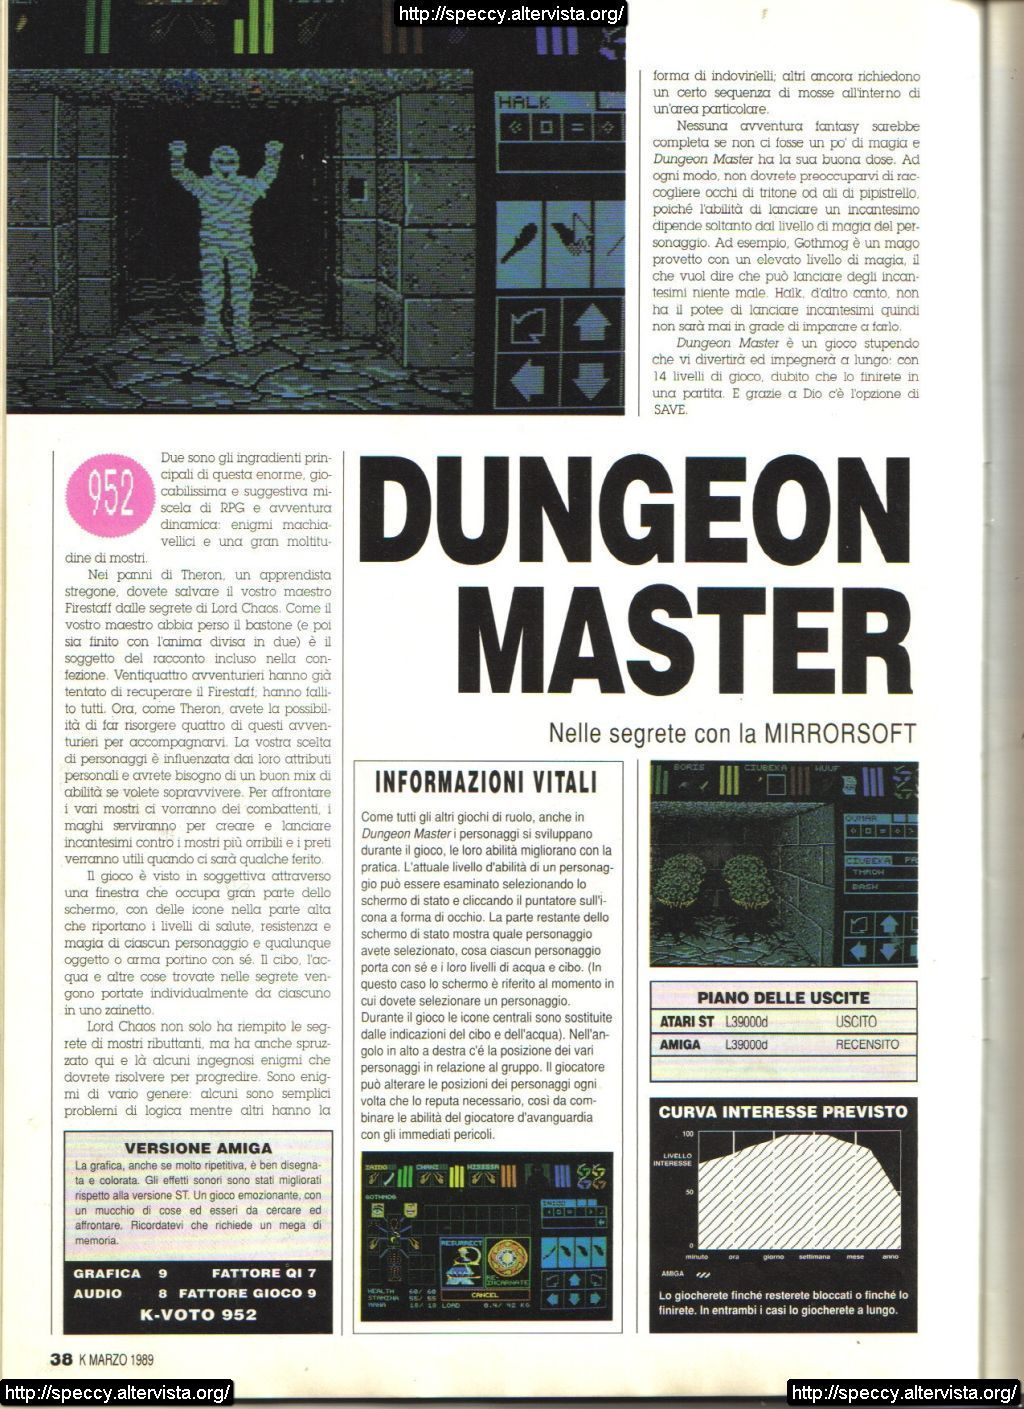 Dungeon Master for Amiga Review published in Italian magazine 'K', Issue #4, March 1989, Page 40